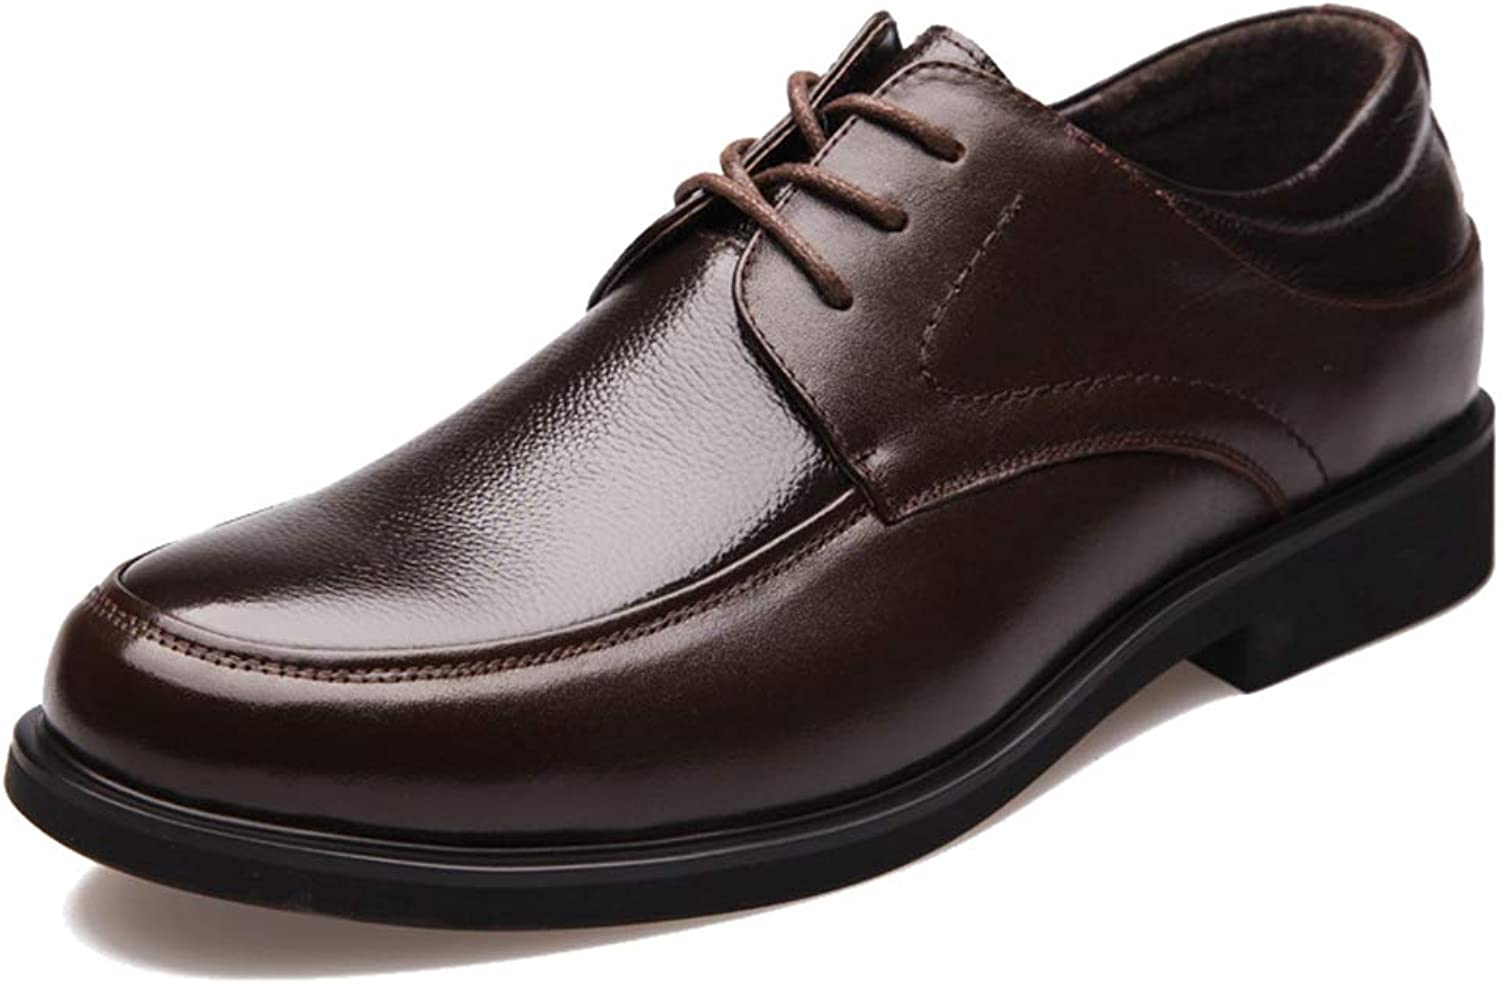 Phil Betty Mens Oxford shoes Lace Up Round Toe Breathable Business Casual Dress shoes